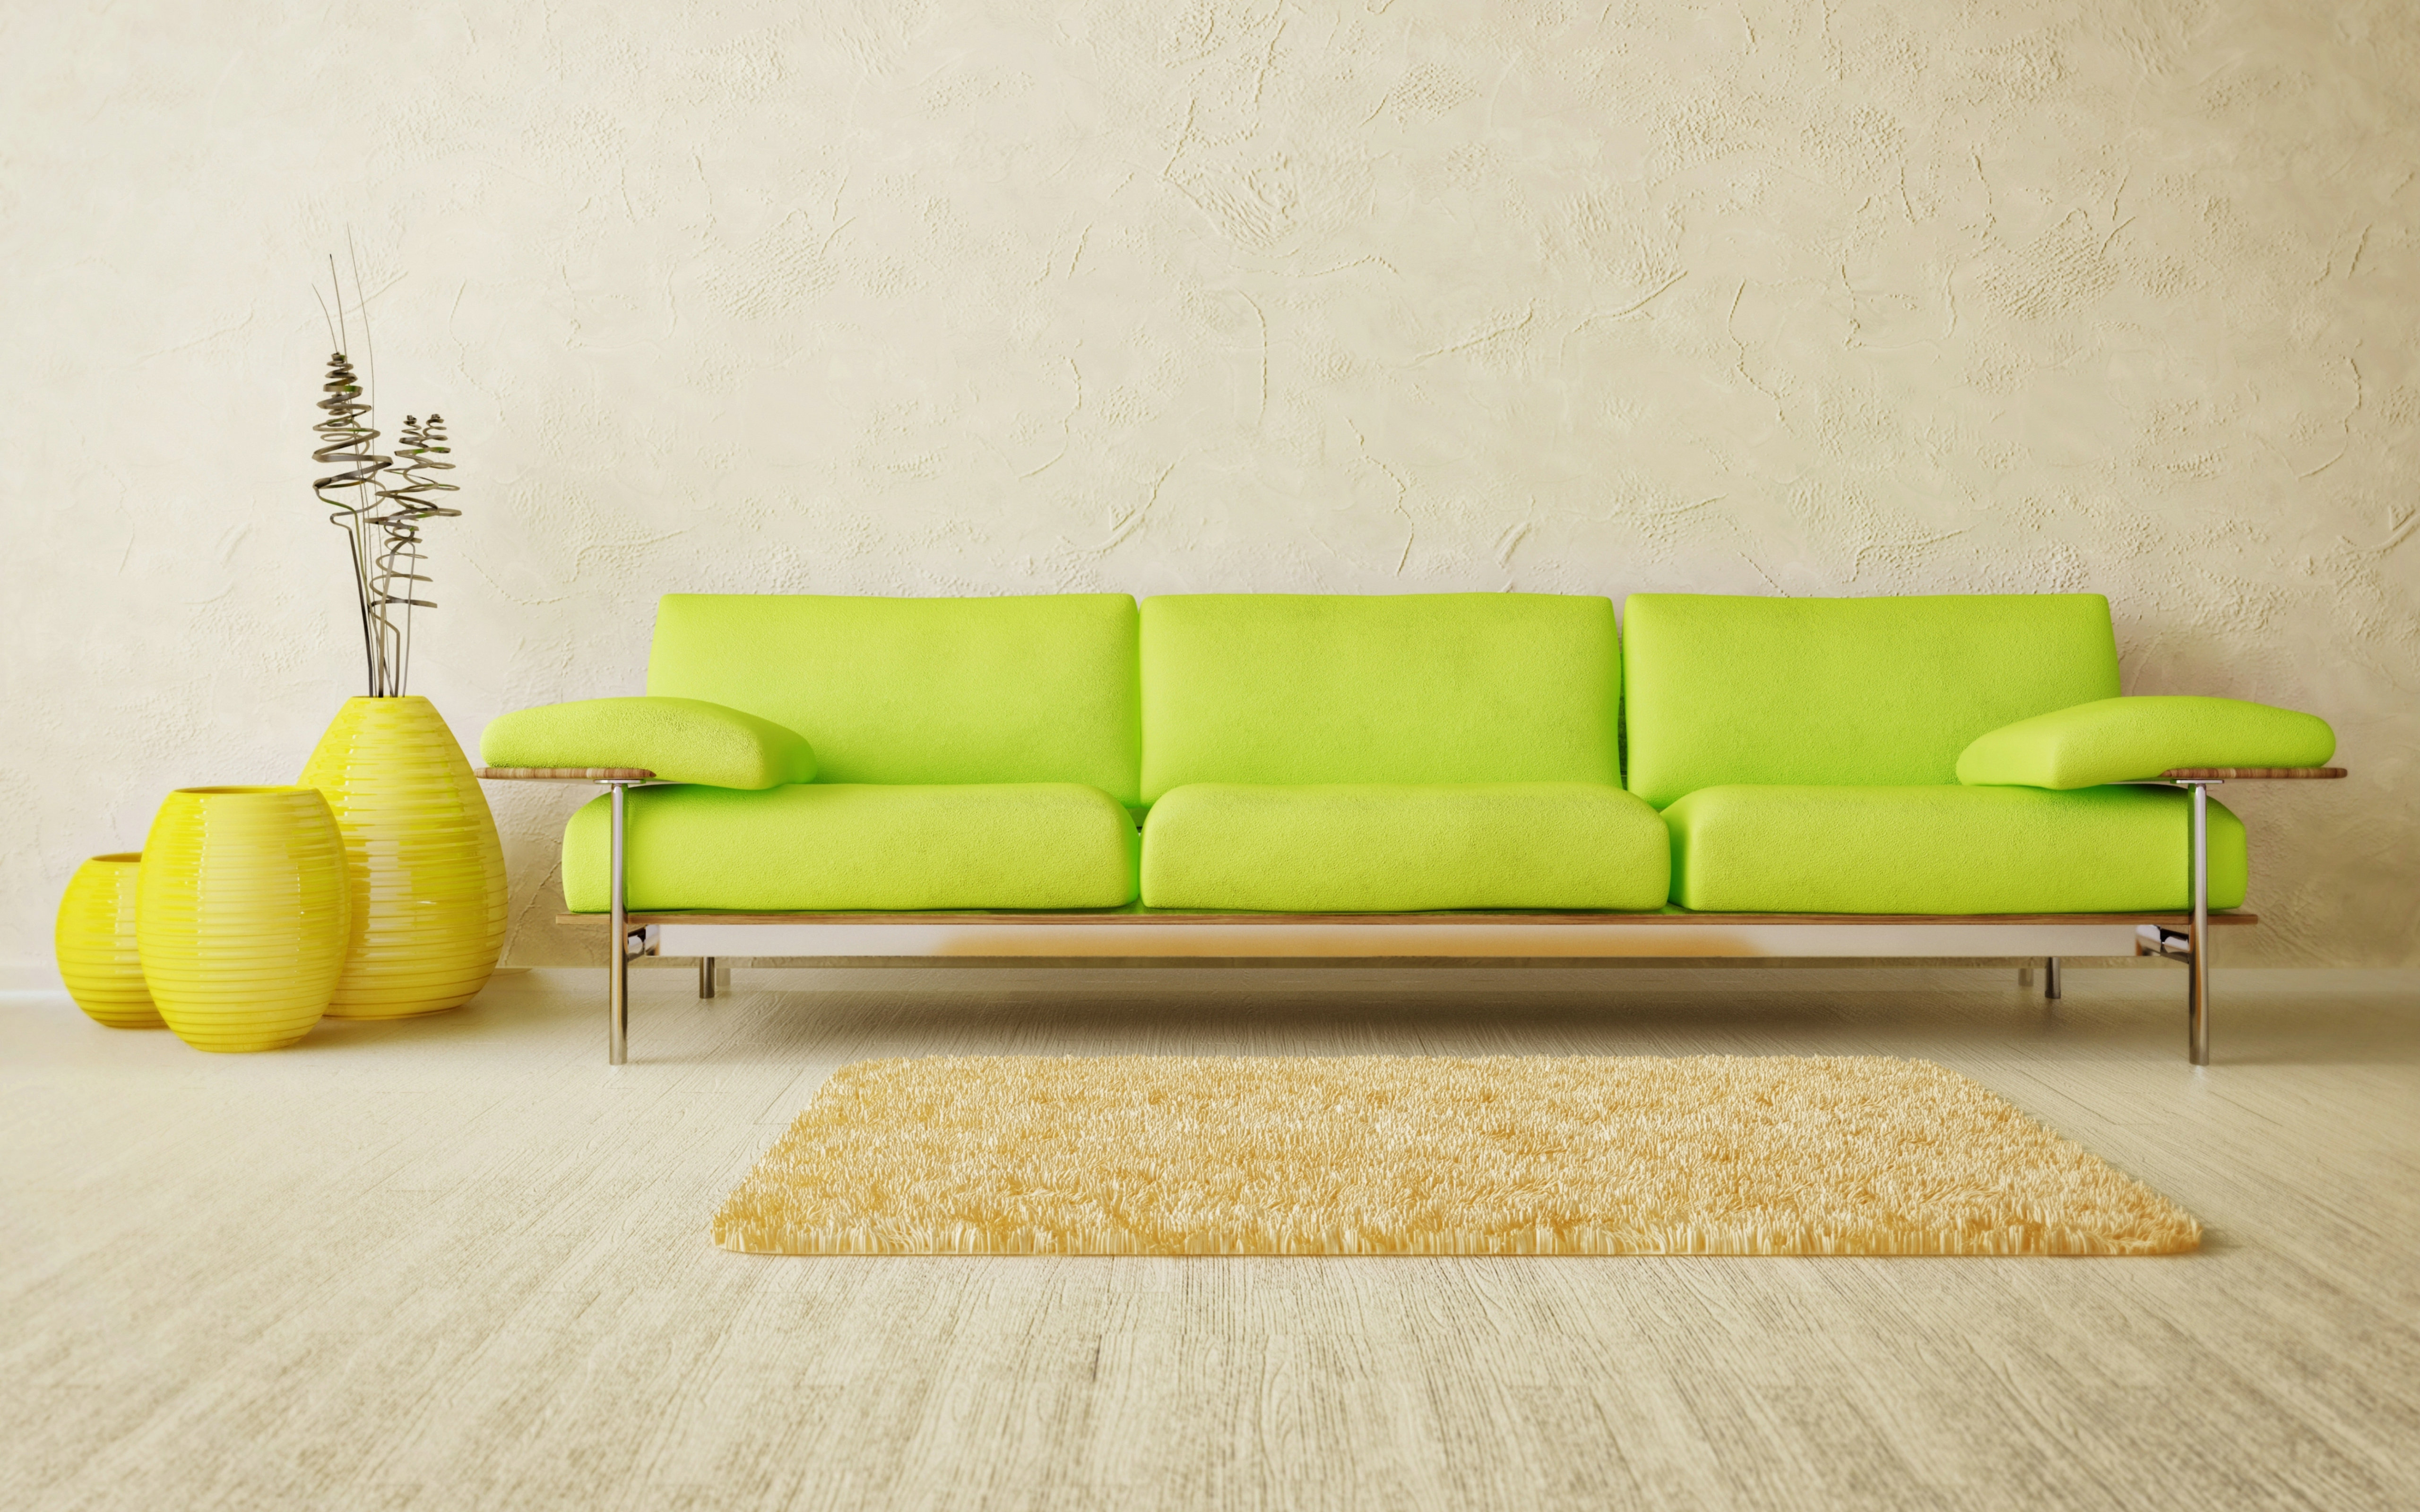 and-yellow-style-living-room-design-wallpaper